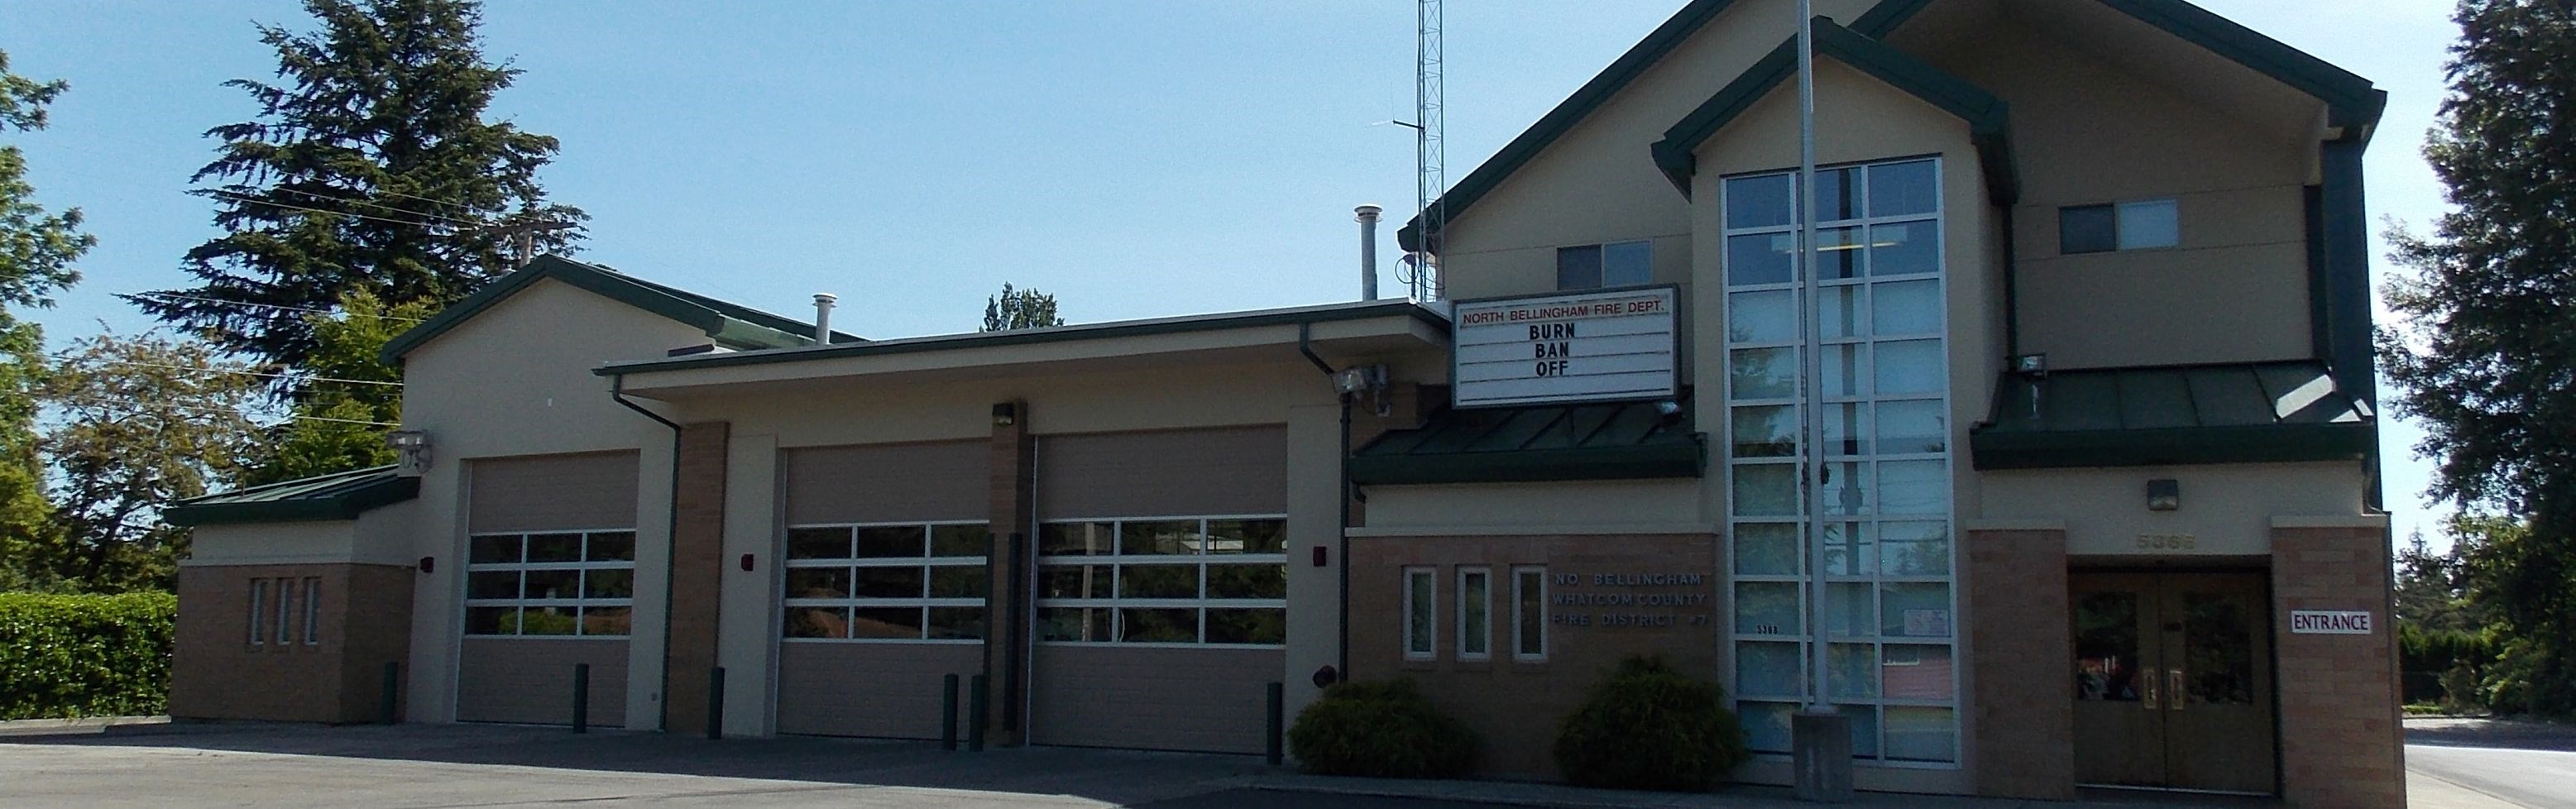 Whatcom Co. Fire District 7, Station 3